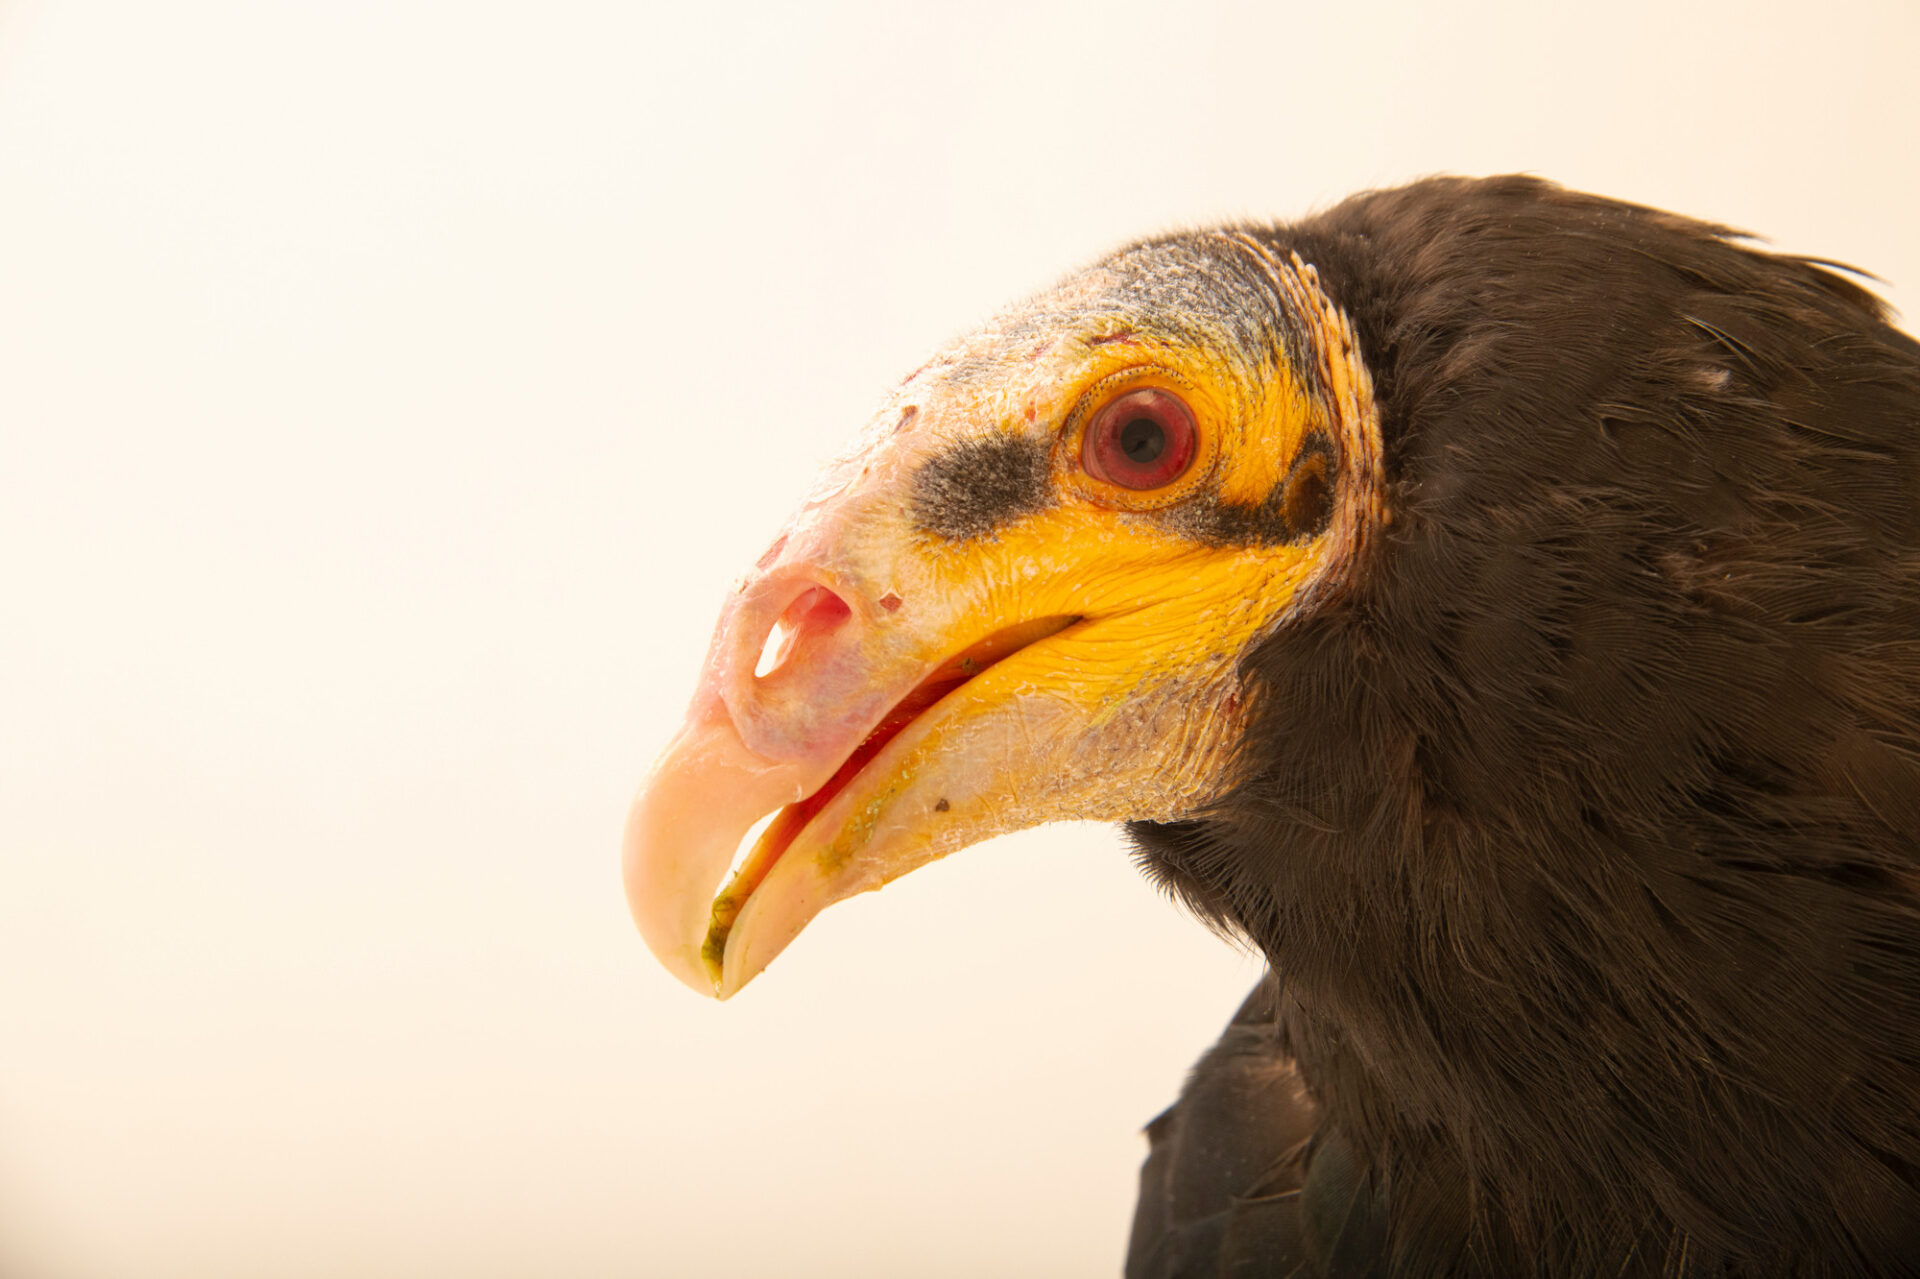 Photo: A lesser yellow-headed vulture (Cathartes burrovianus) at Tierpark Berlin.